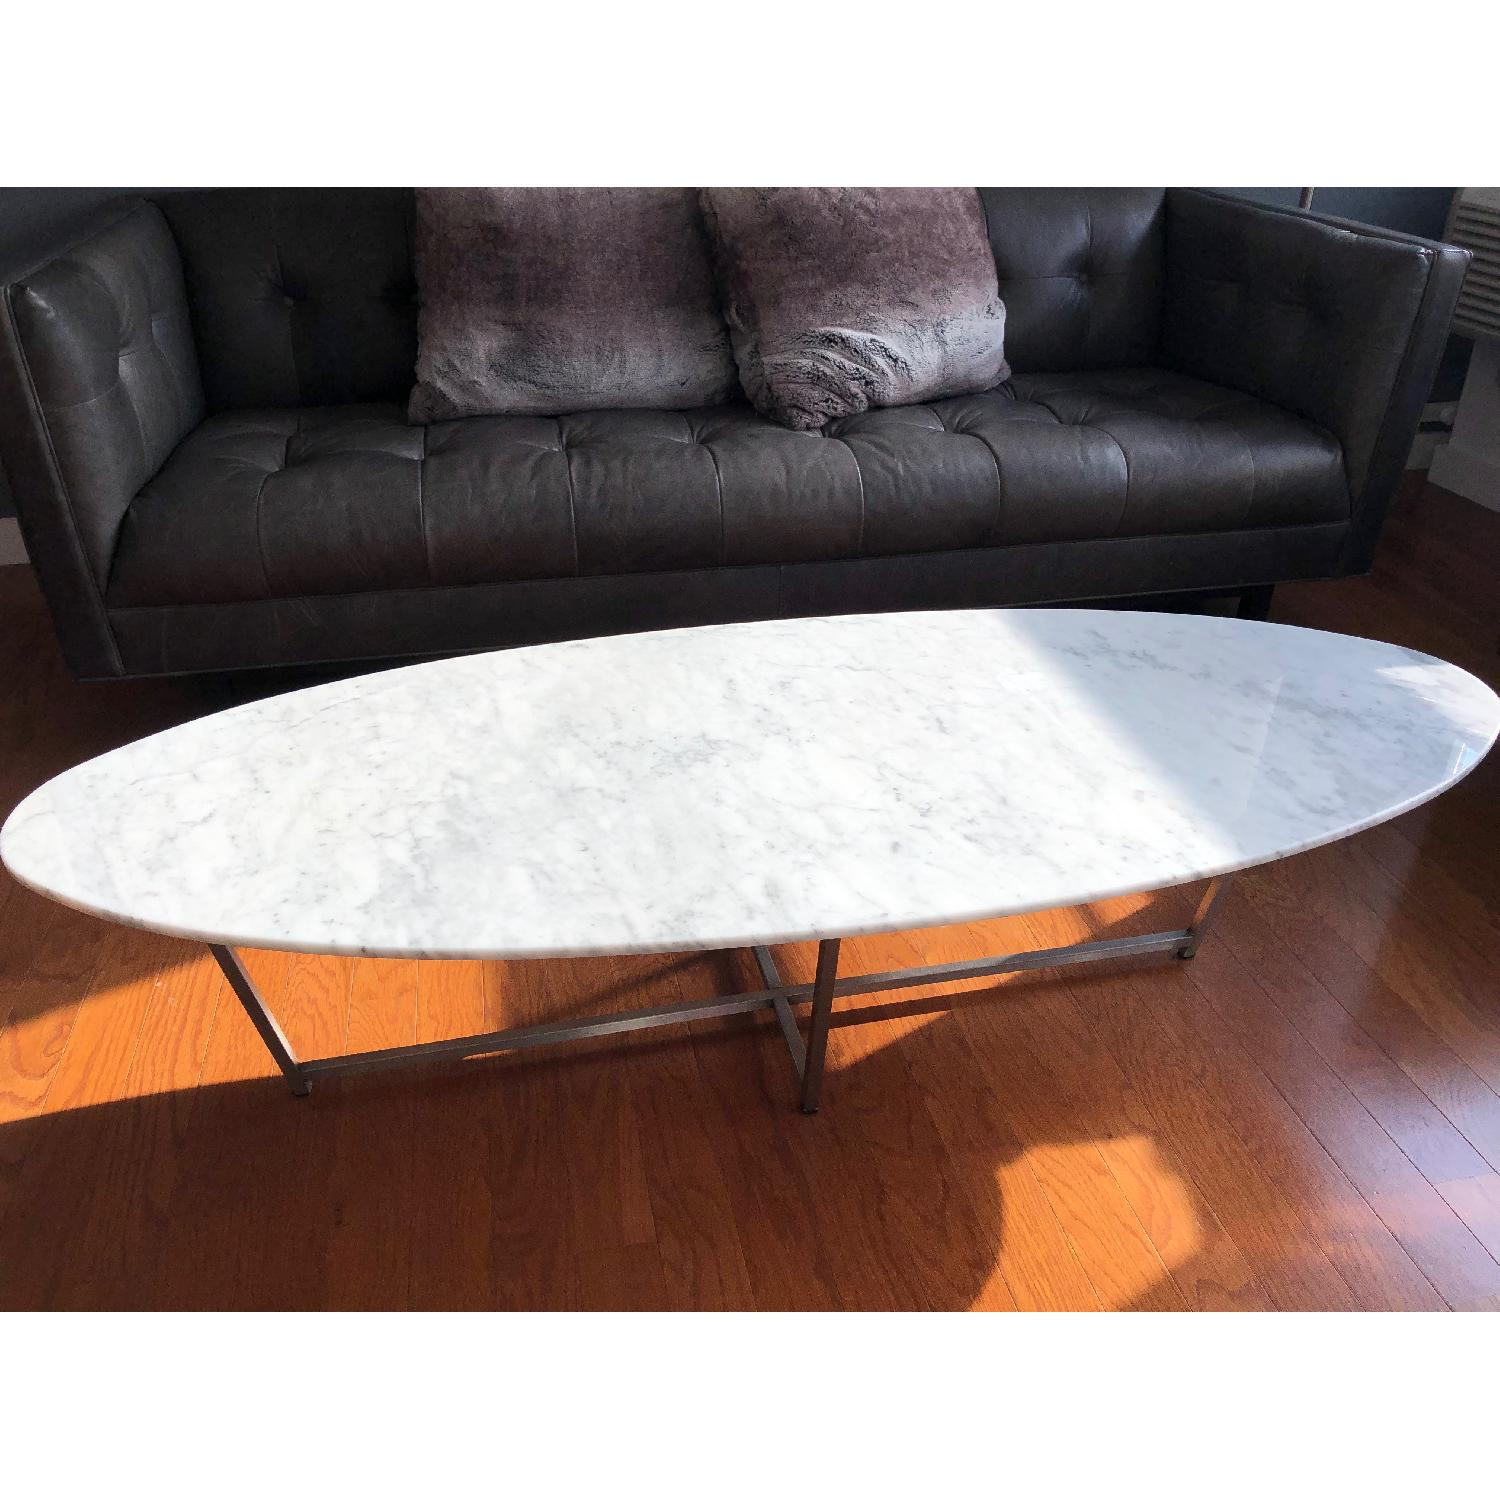 Room & Board Oval Coffee Table in Stainless/Venatian Marble-0